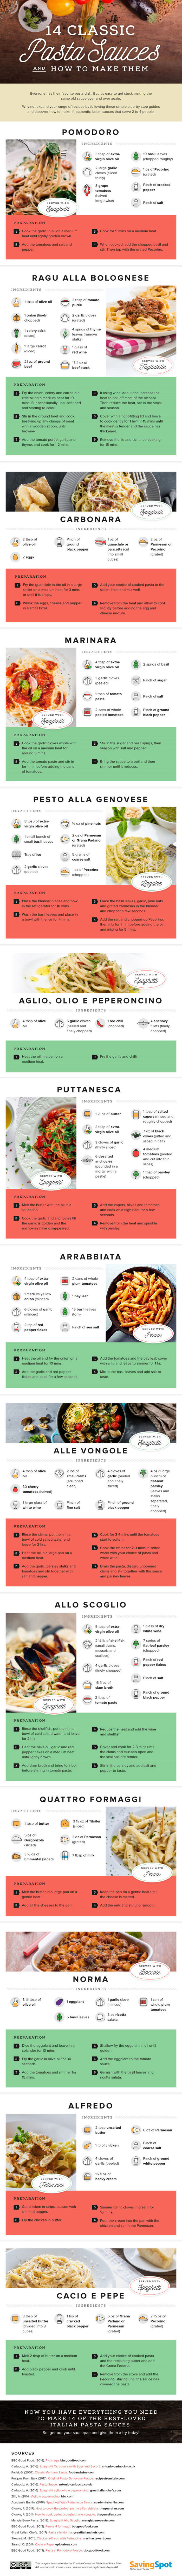 Pasta Sauces How to Make Them Infographic